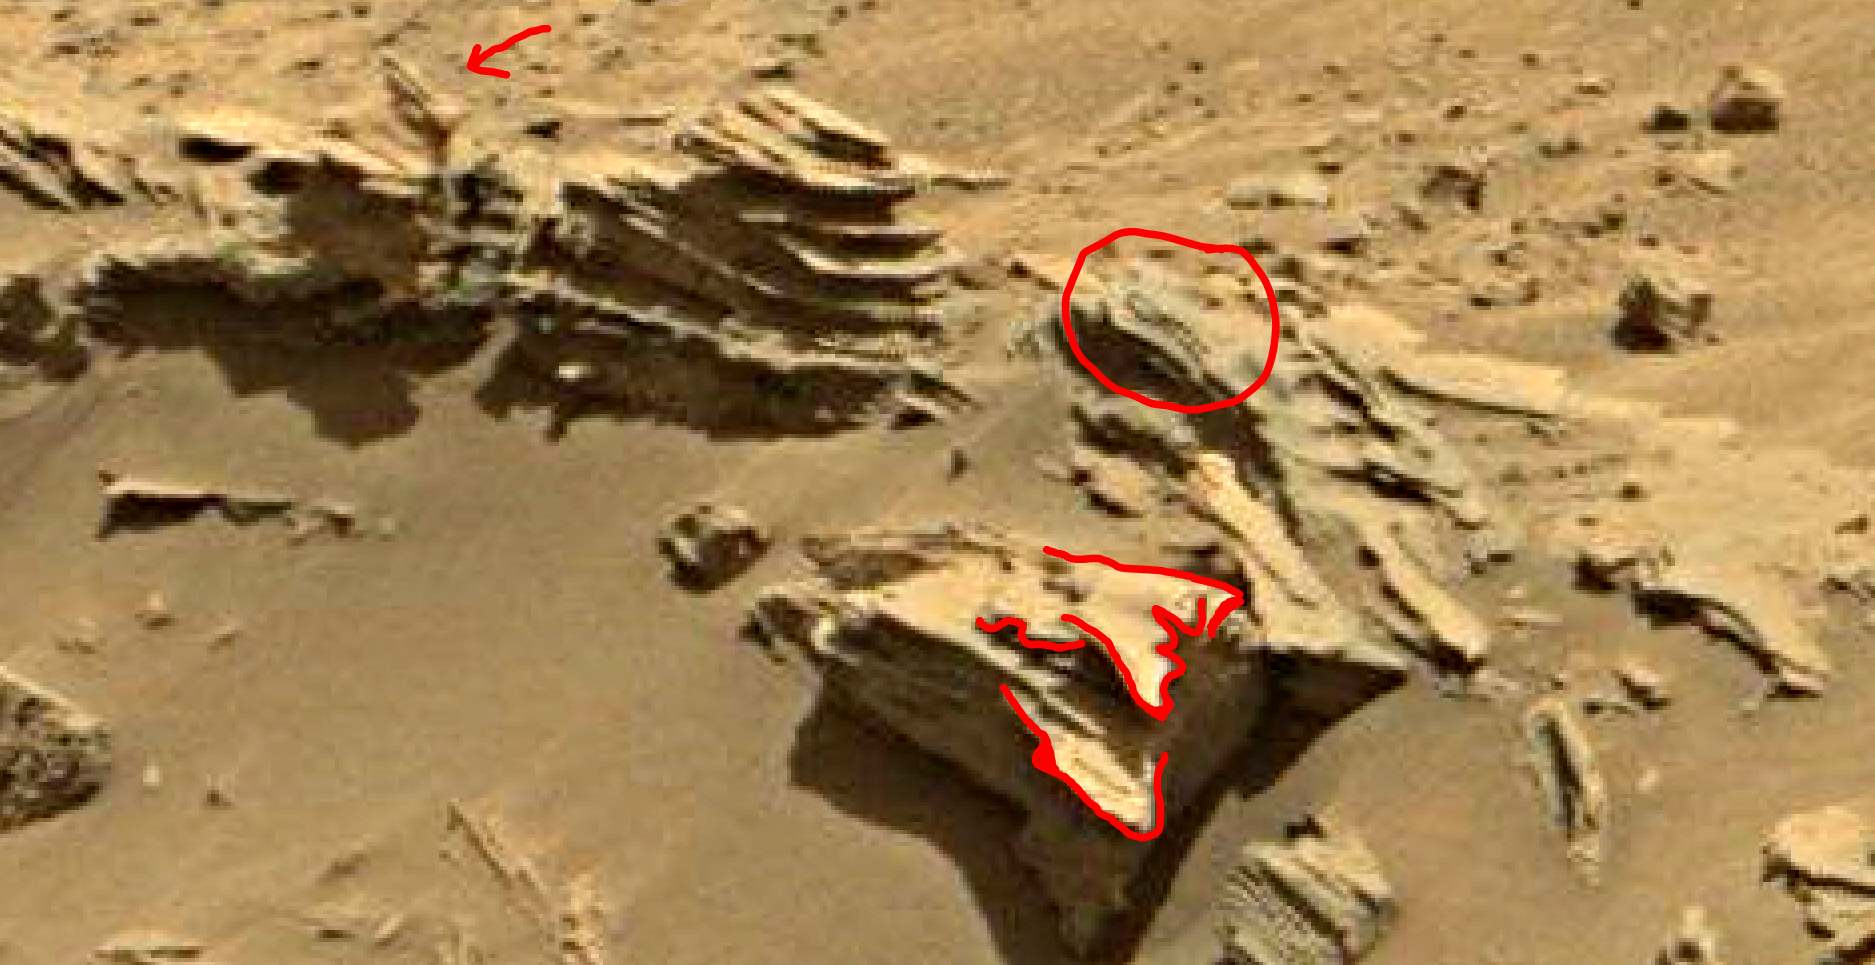 mars sol 1346 anomaly-artifacts 12a was life on mars